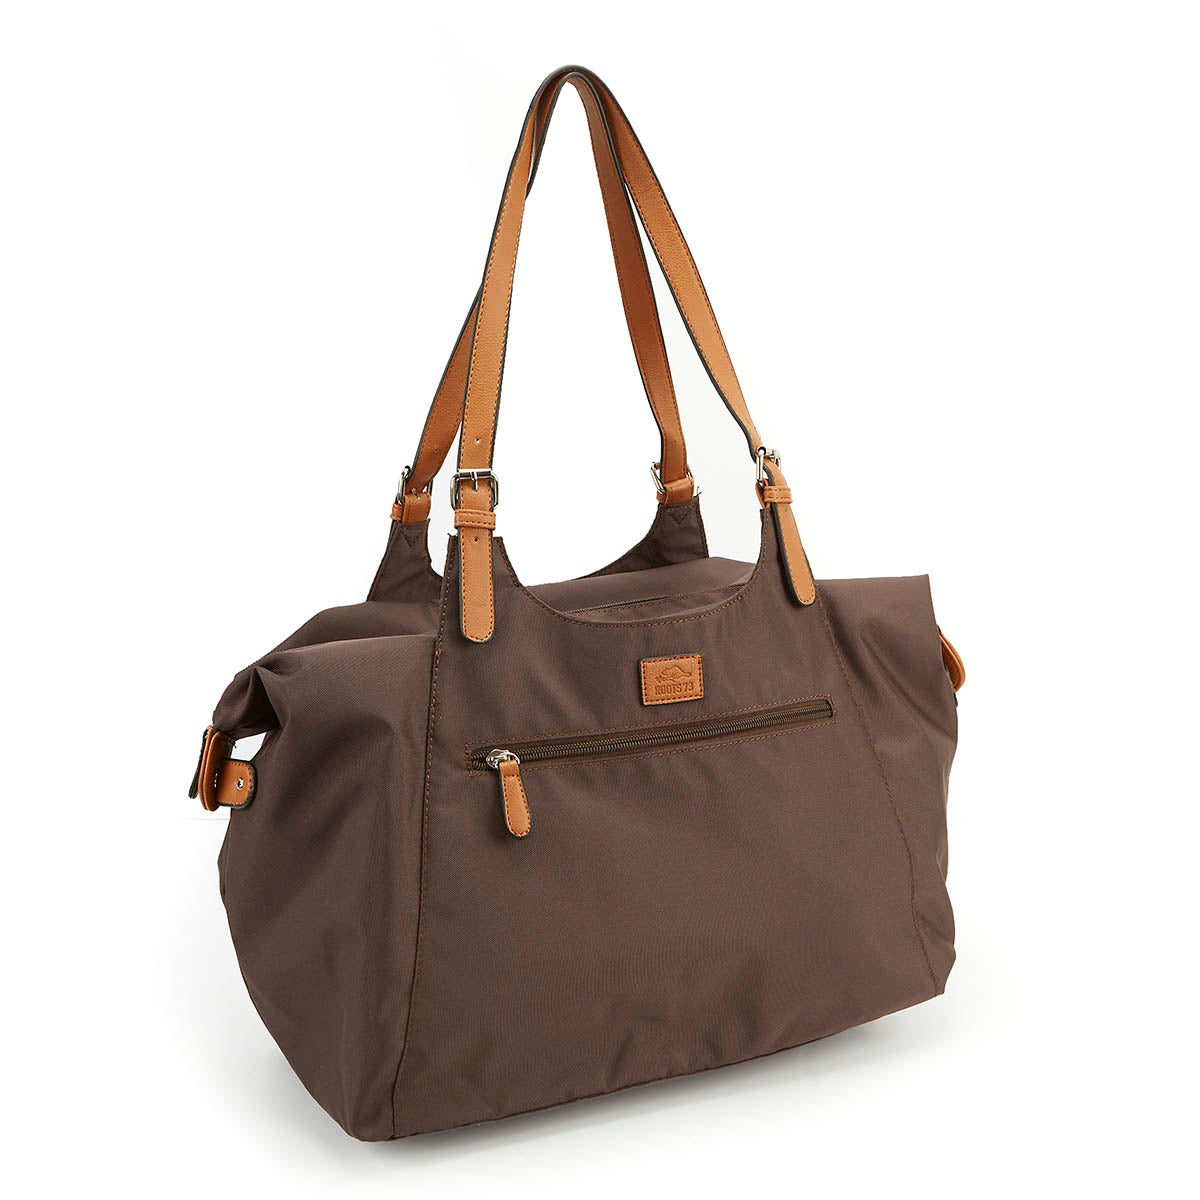 Lds Roots73 brown nylon large tote bag